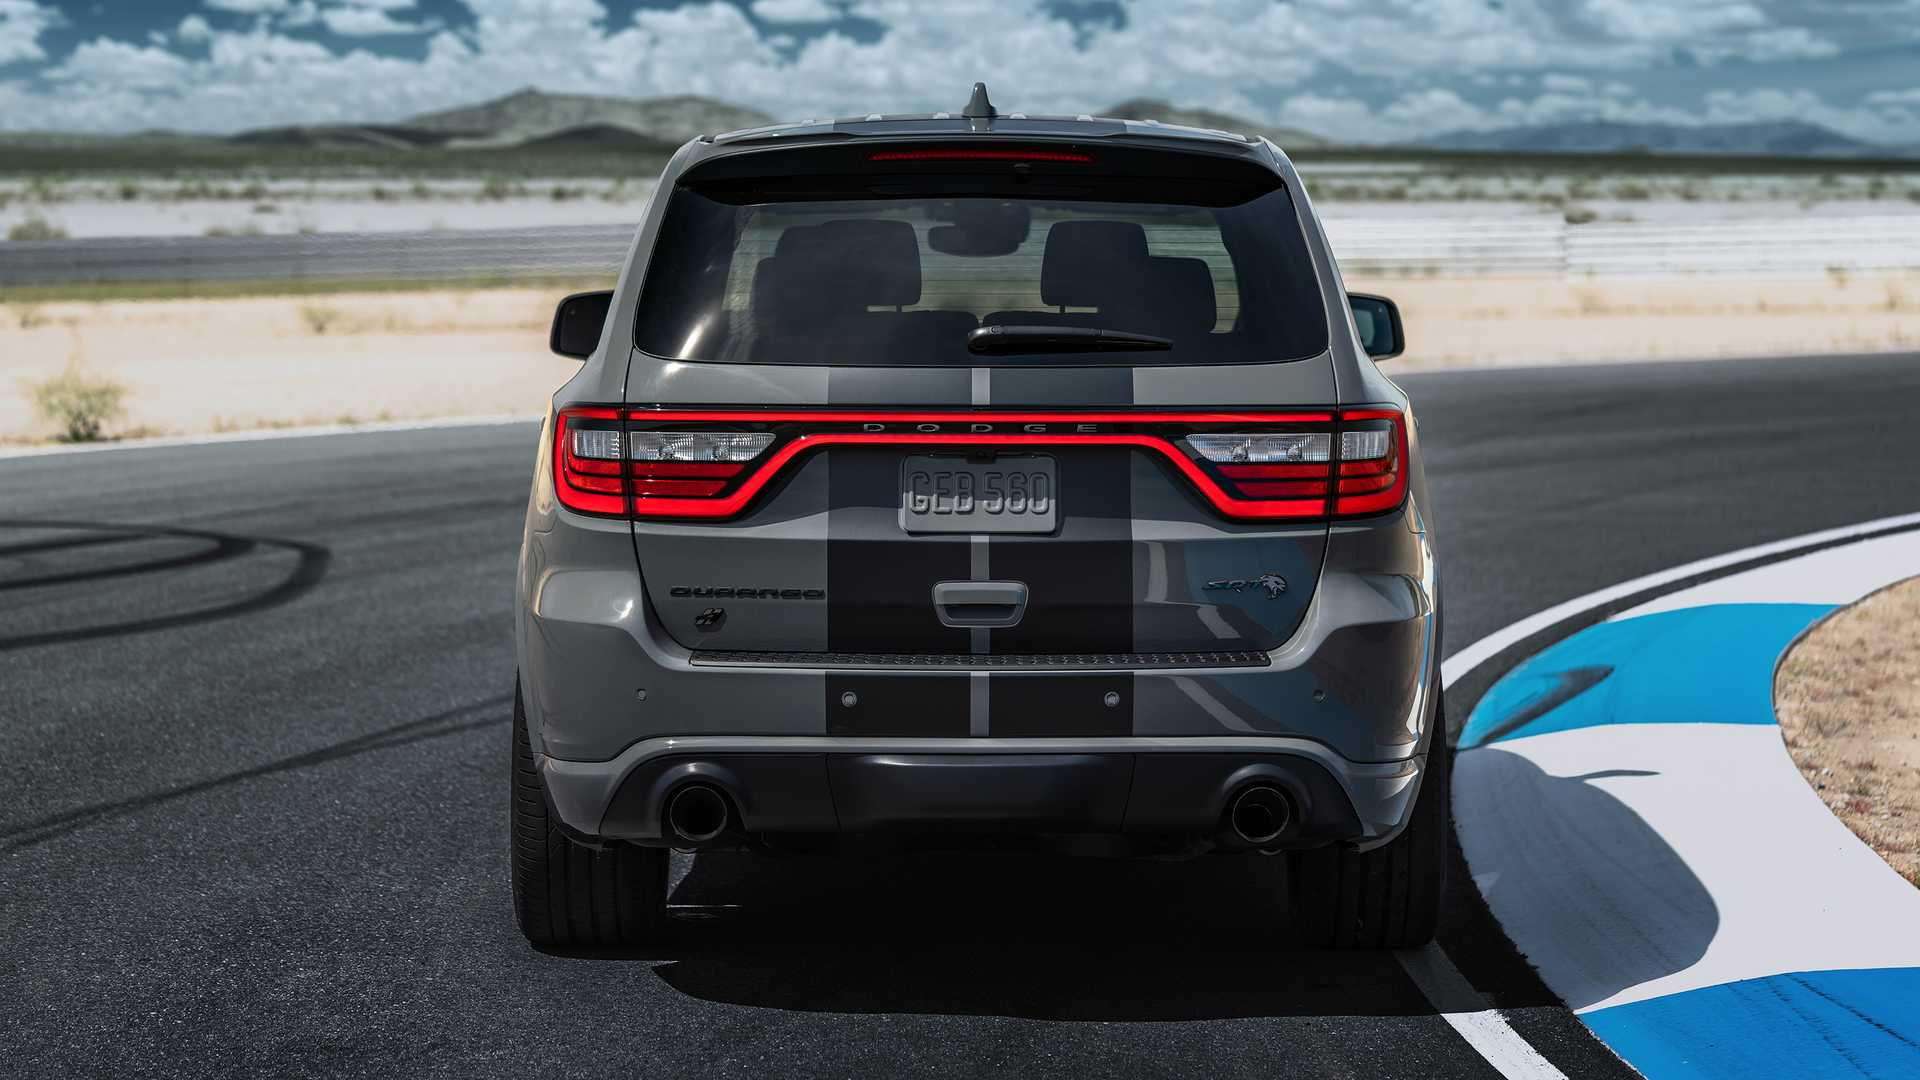 2021 Dodge Durango SRT SUV Rear View